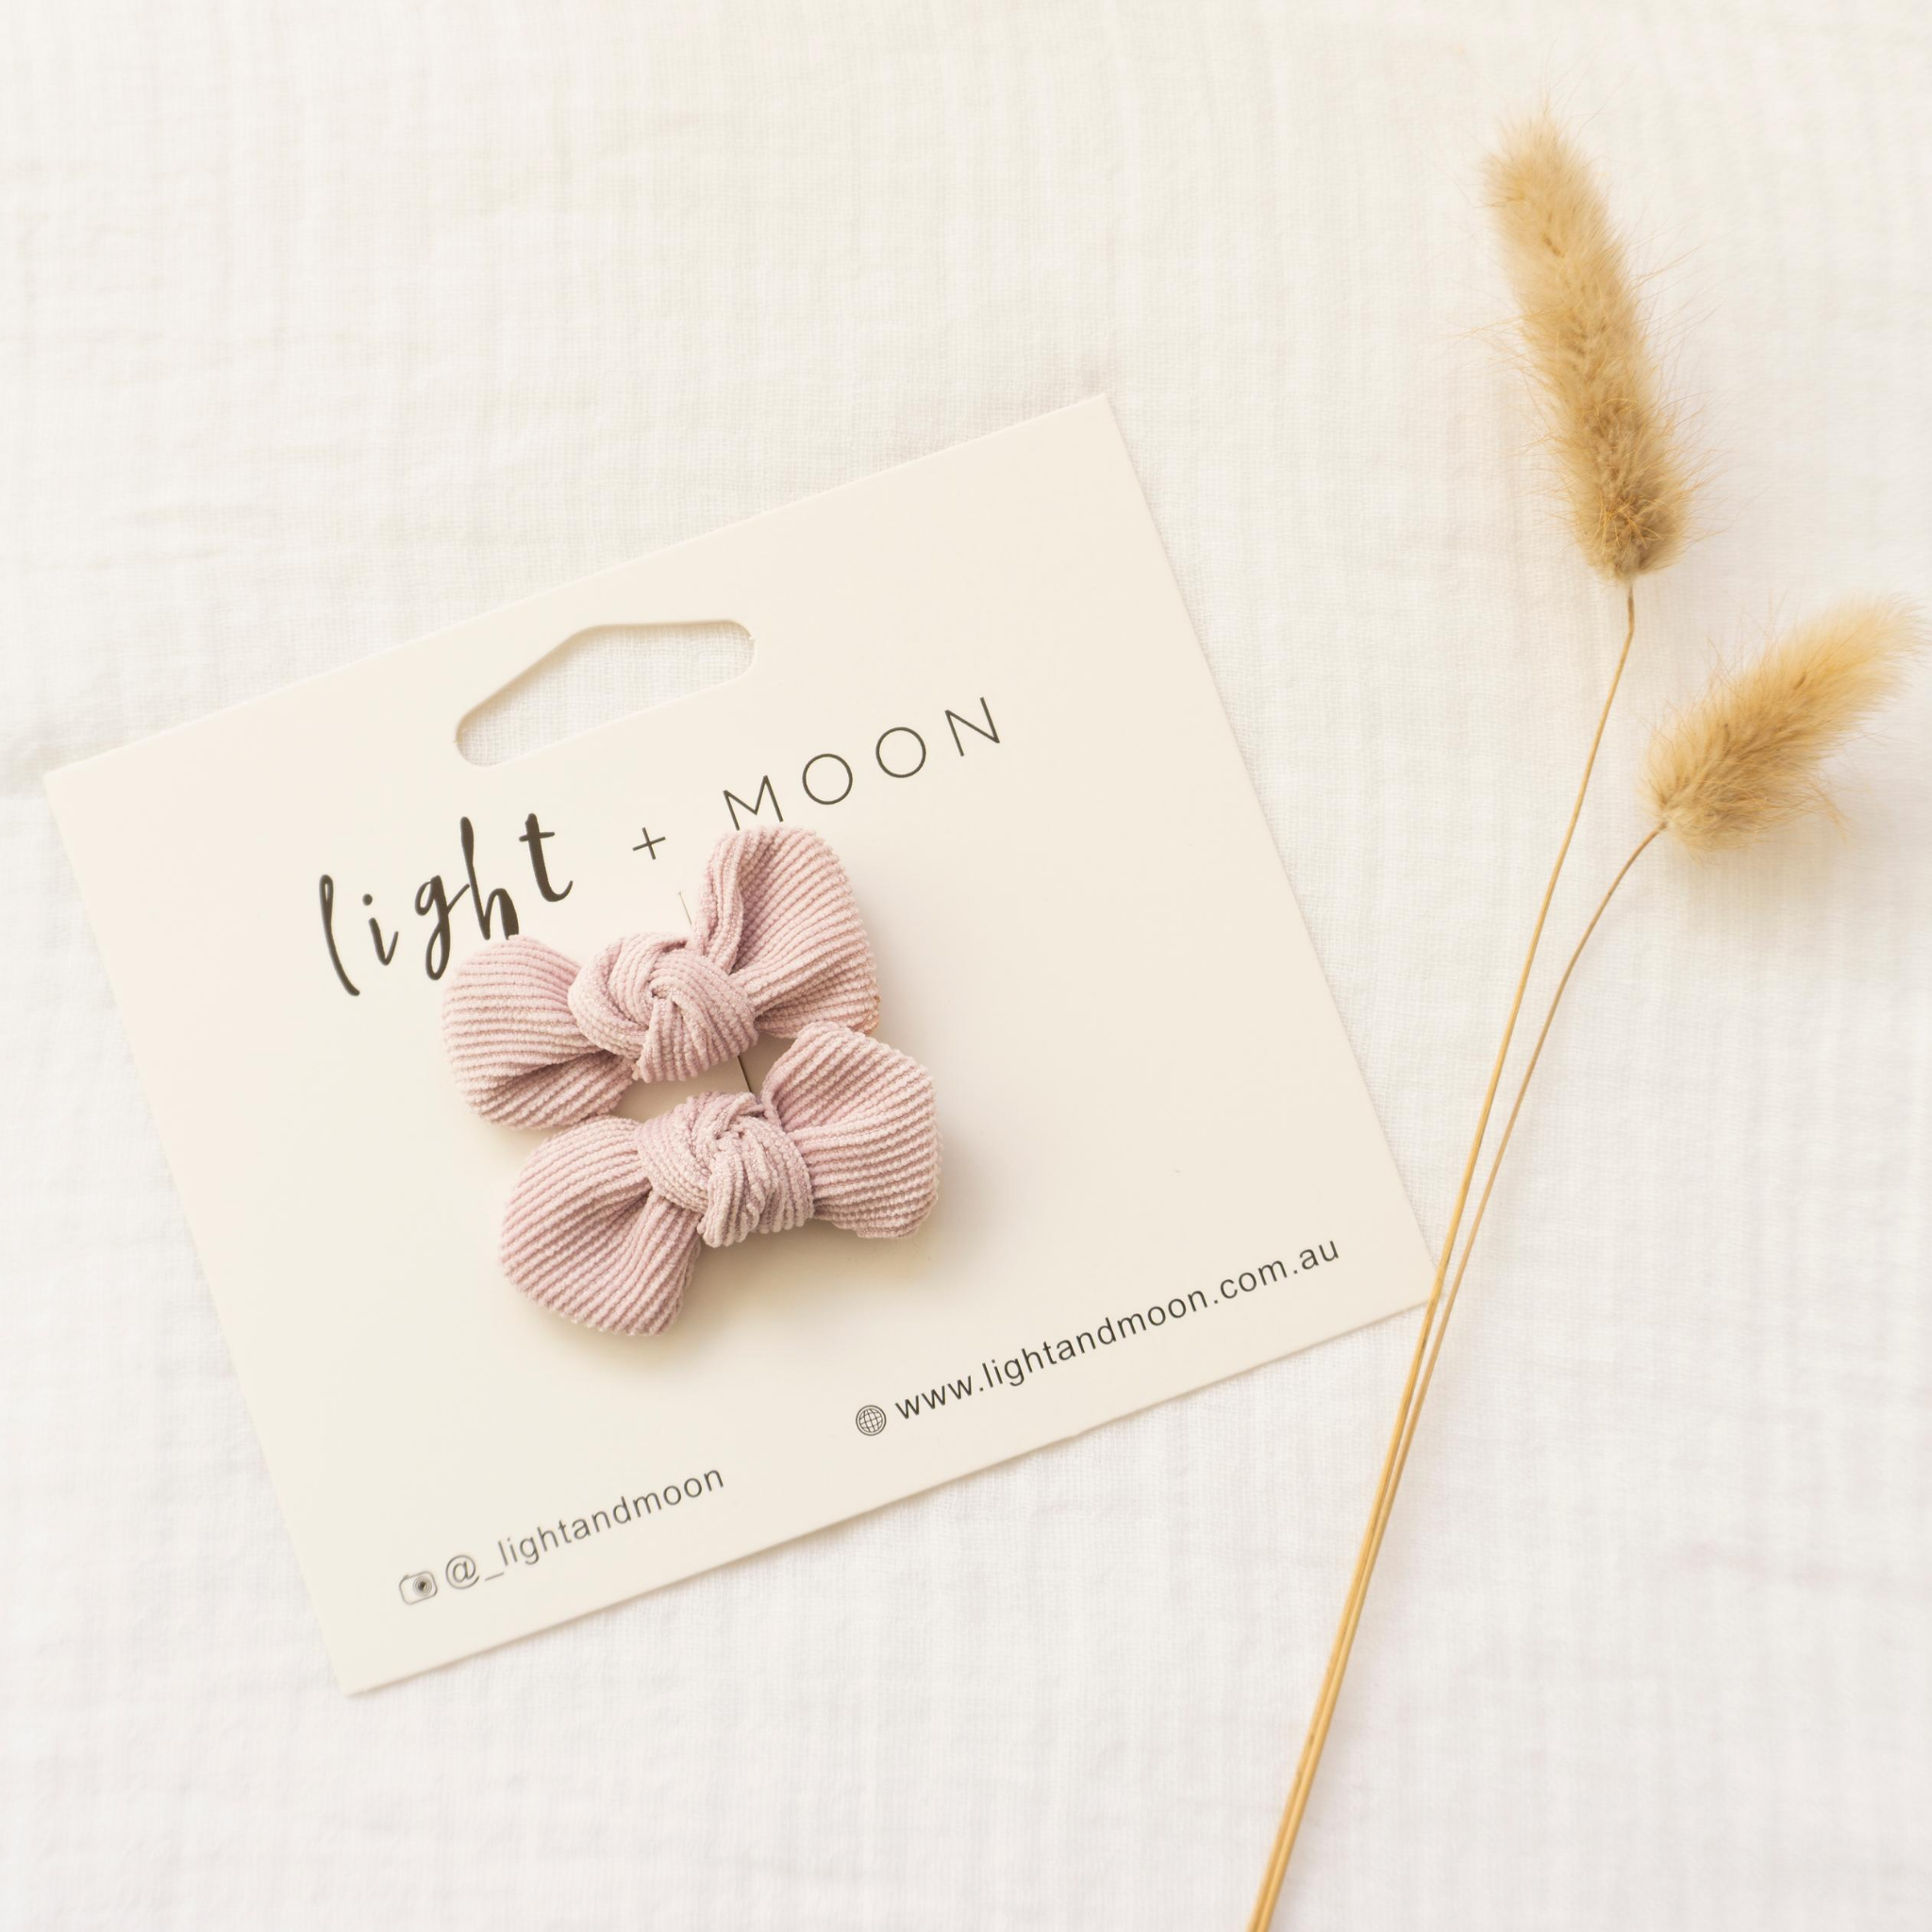 LIGHT + MOON - Bow Clips 2pk